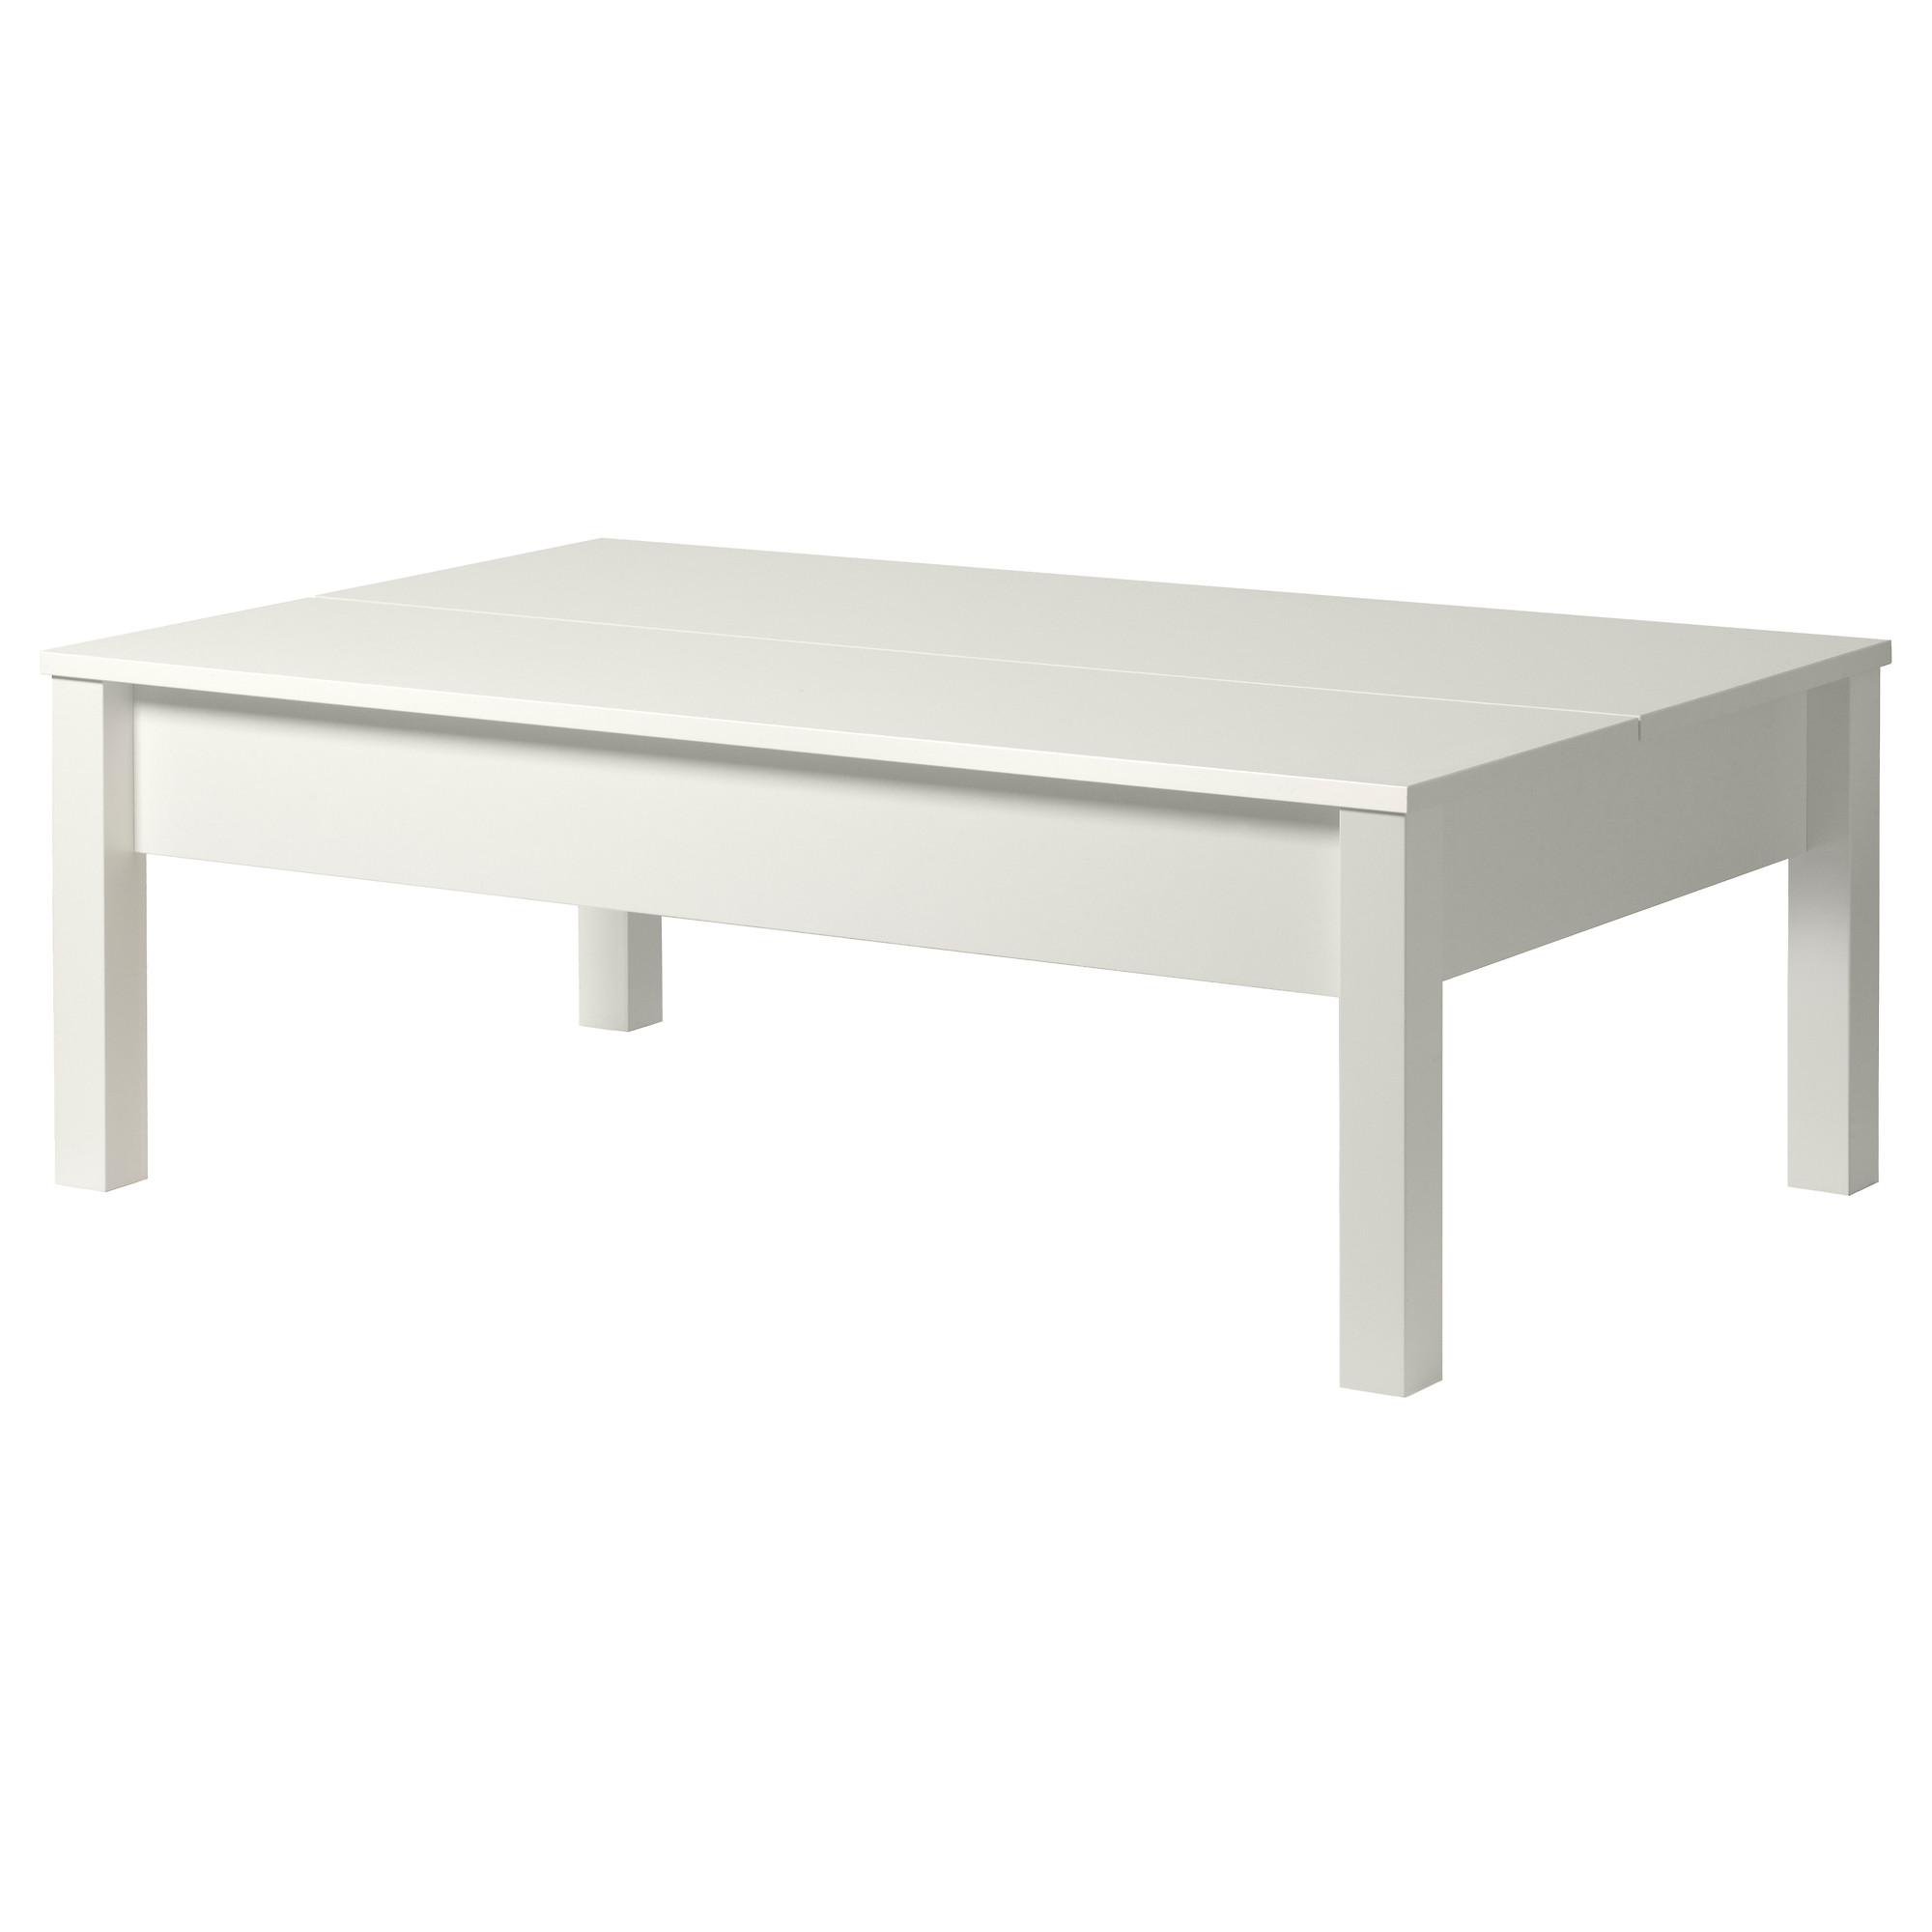 Table basse jardin ikea mobilier design d coration d for Banco de jardin ikea